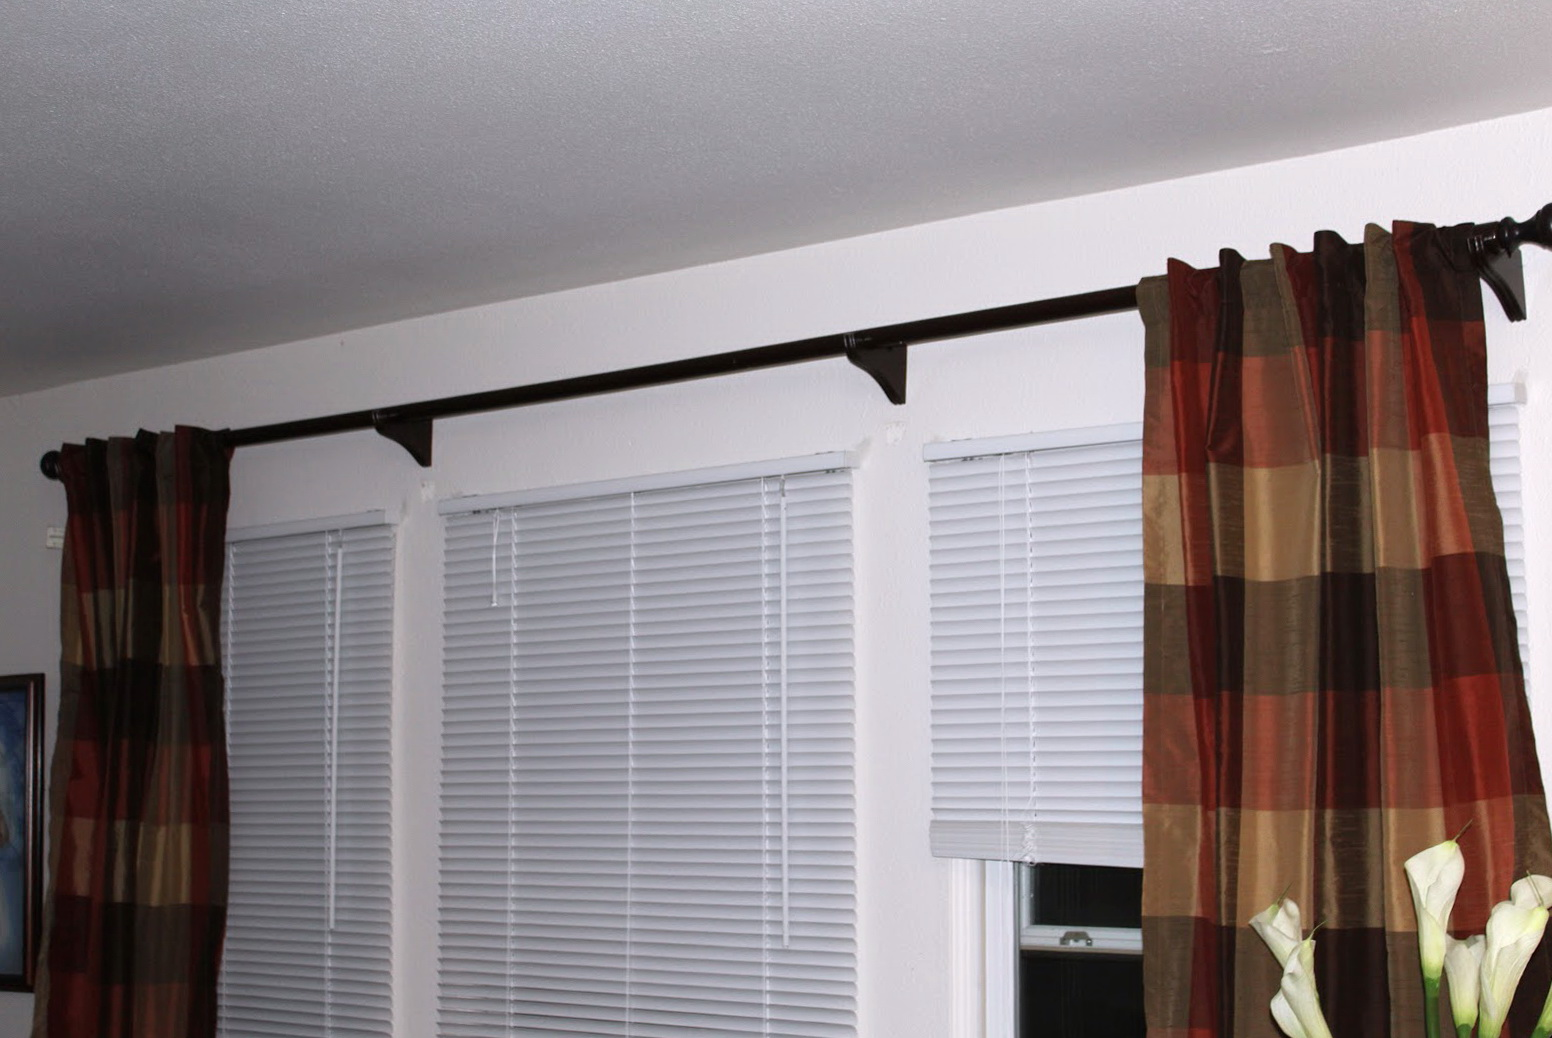 extra long curtain rods amazon home design ideas. Black Bedroom Furniture Sets. Home Design Ideas